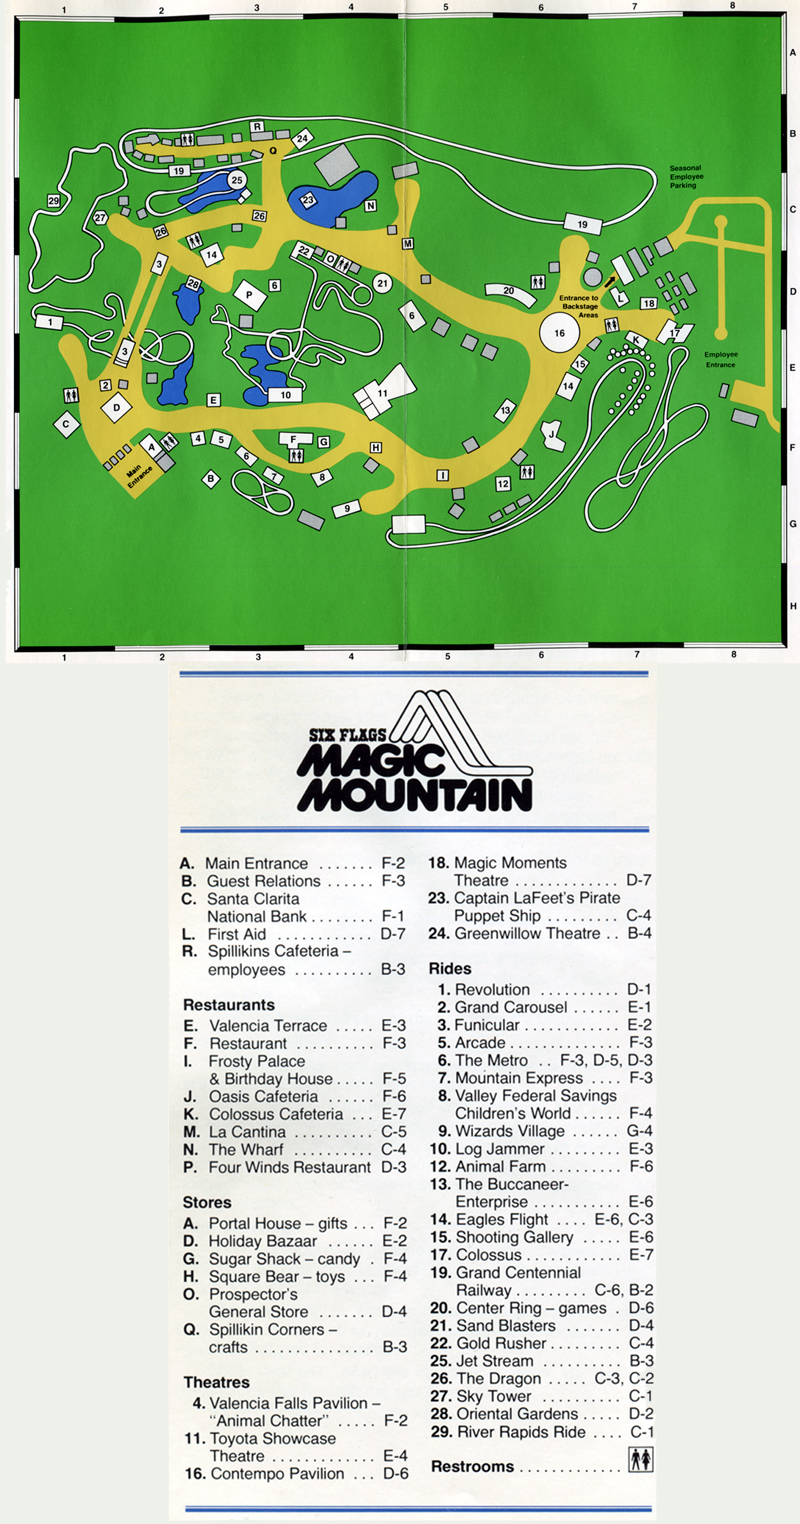 SCVHistory.com SR8103 | Magic Mountain | 1981 Park Map on woodley park map, cedar point park map, red mountain park map, hurricane harbor valencia map, six flags park map, point reyes park map, six flags valencia map, san francisco park map, mammoth mountain park map, magic park california, copper mountain park map, six flags new england map, magic midway map, san diego park map,